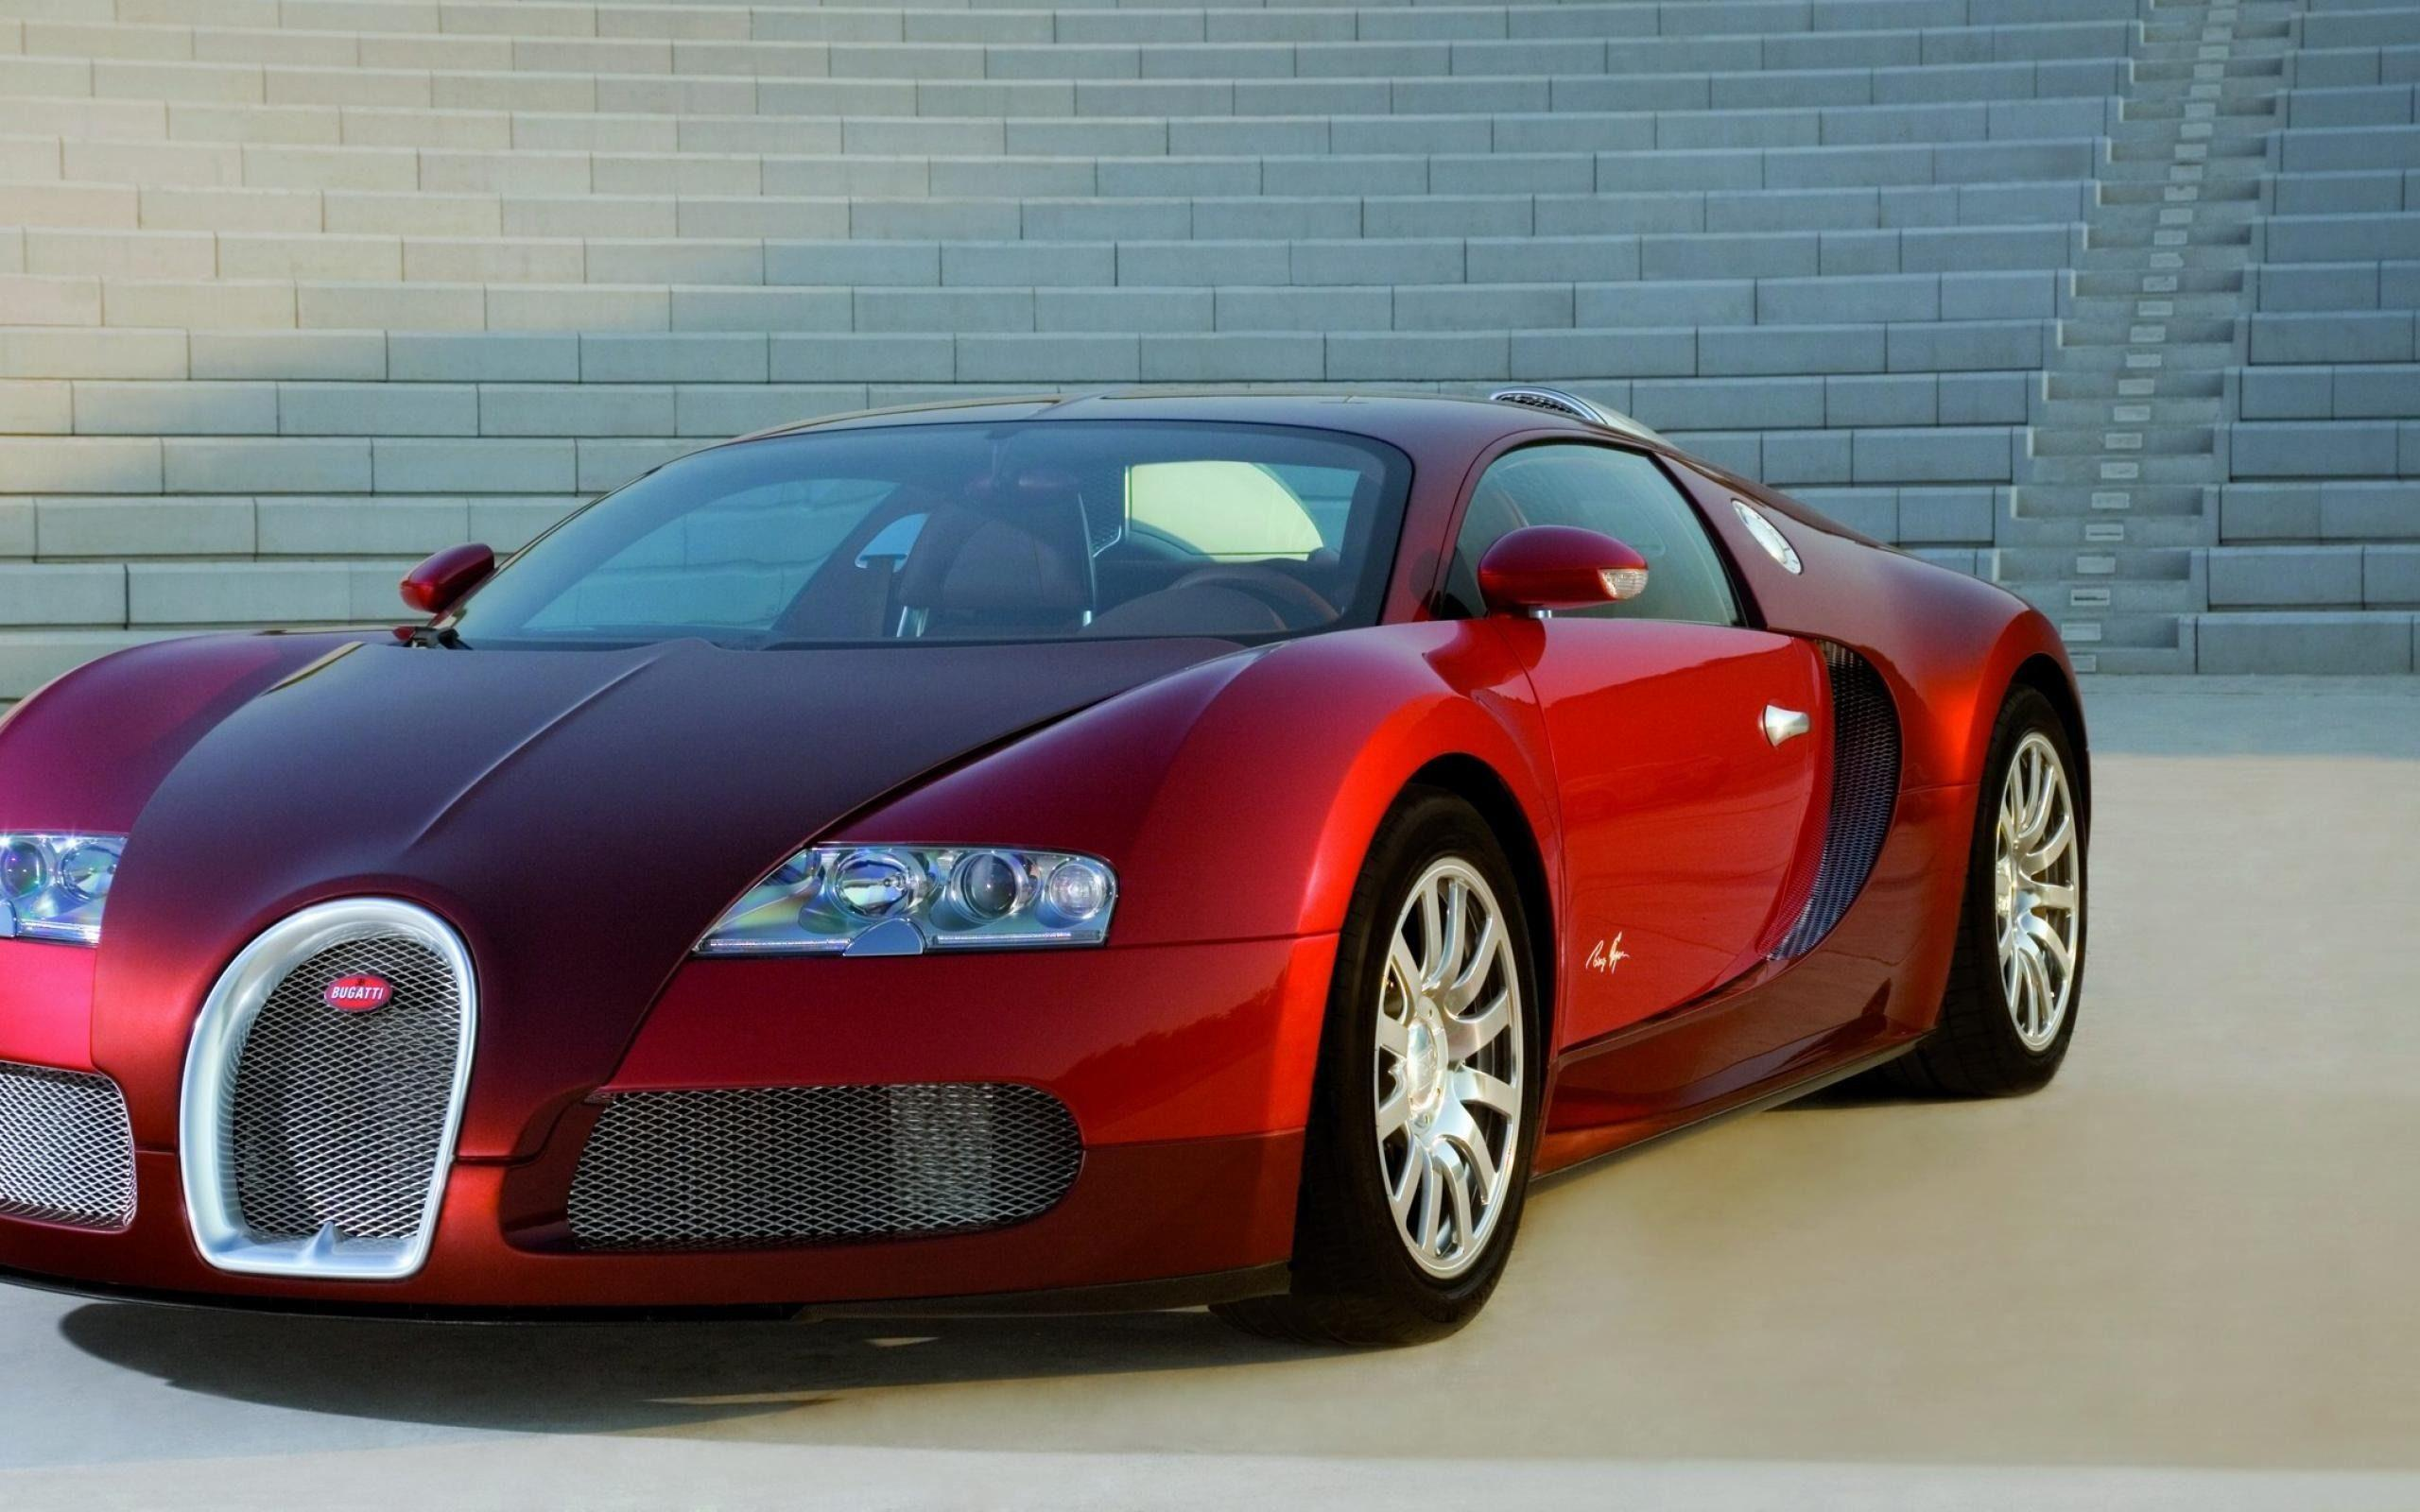 2015 Bugatti Veyron Cars Pictures